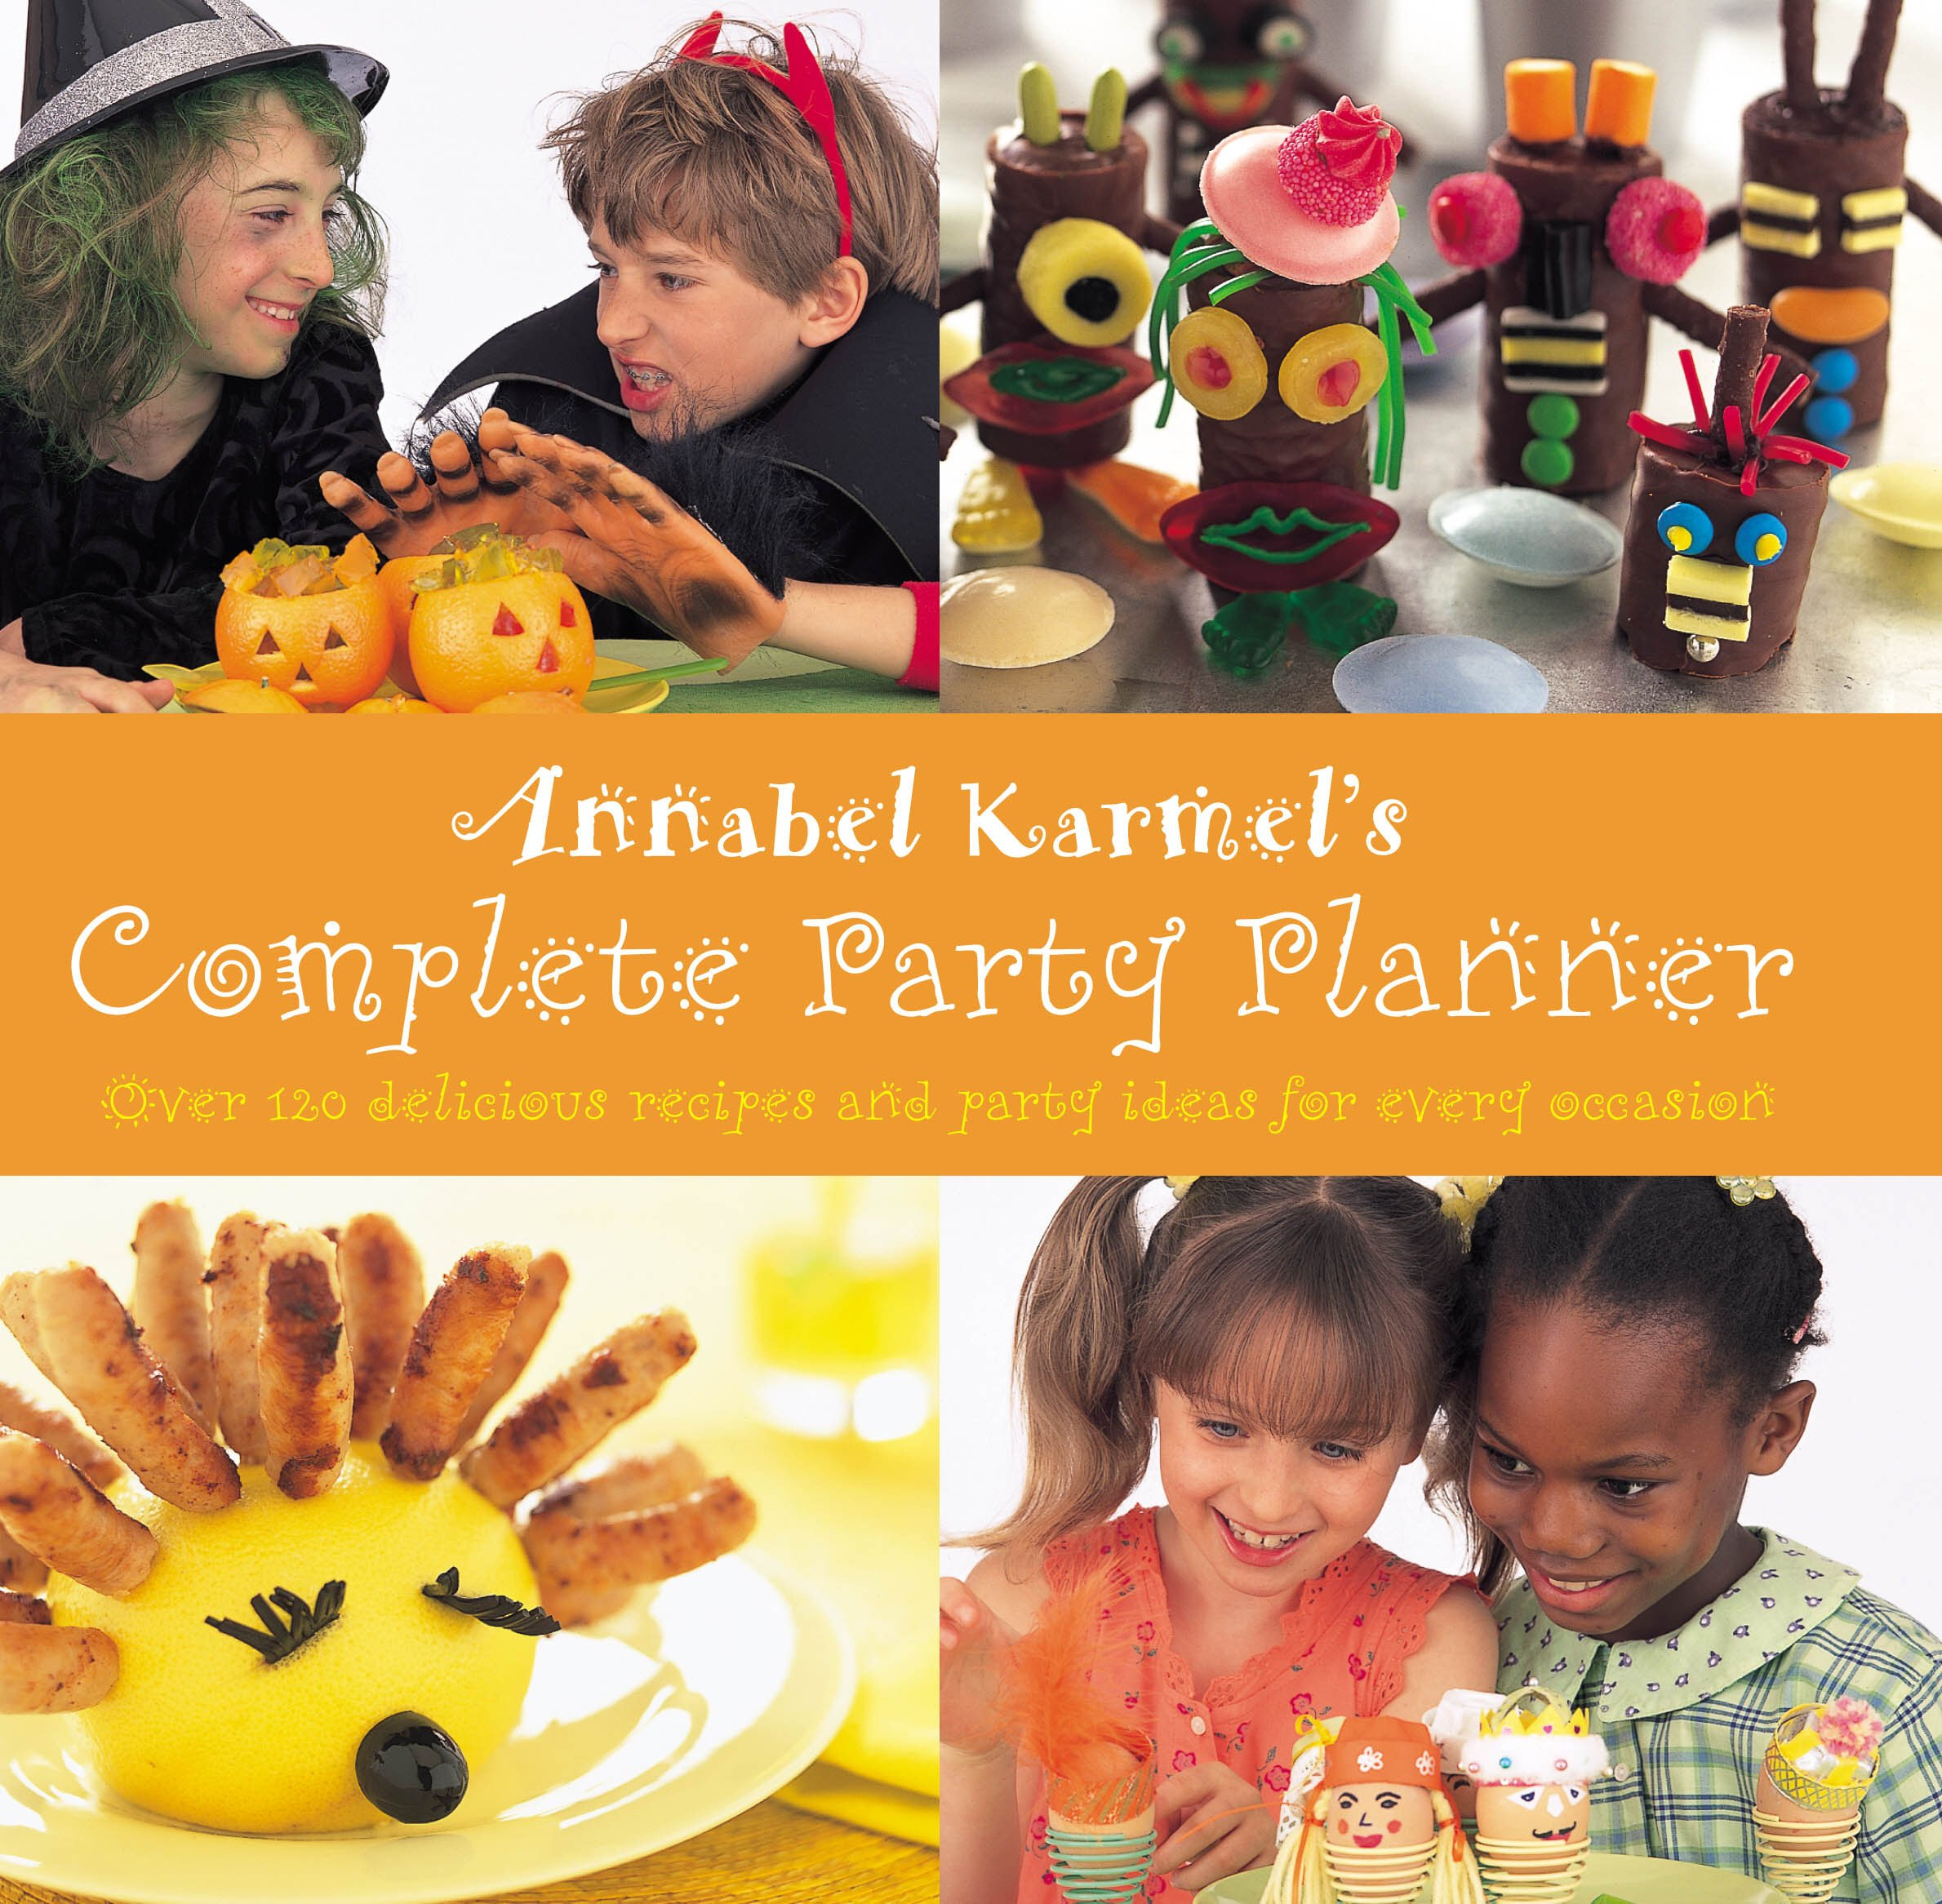 Complete Party Planner Annabel Karmel